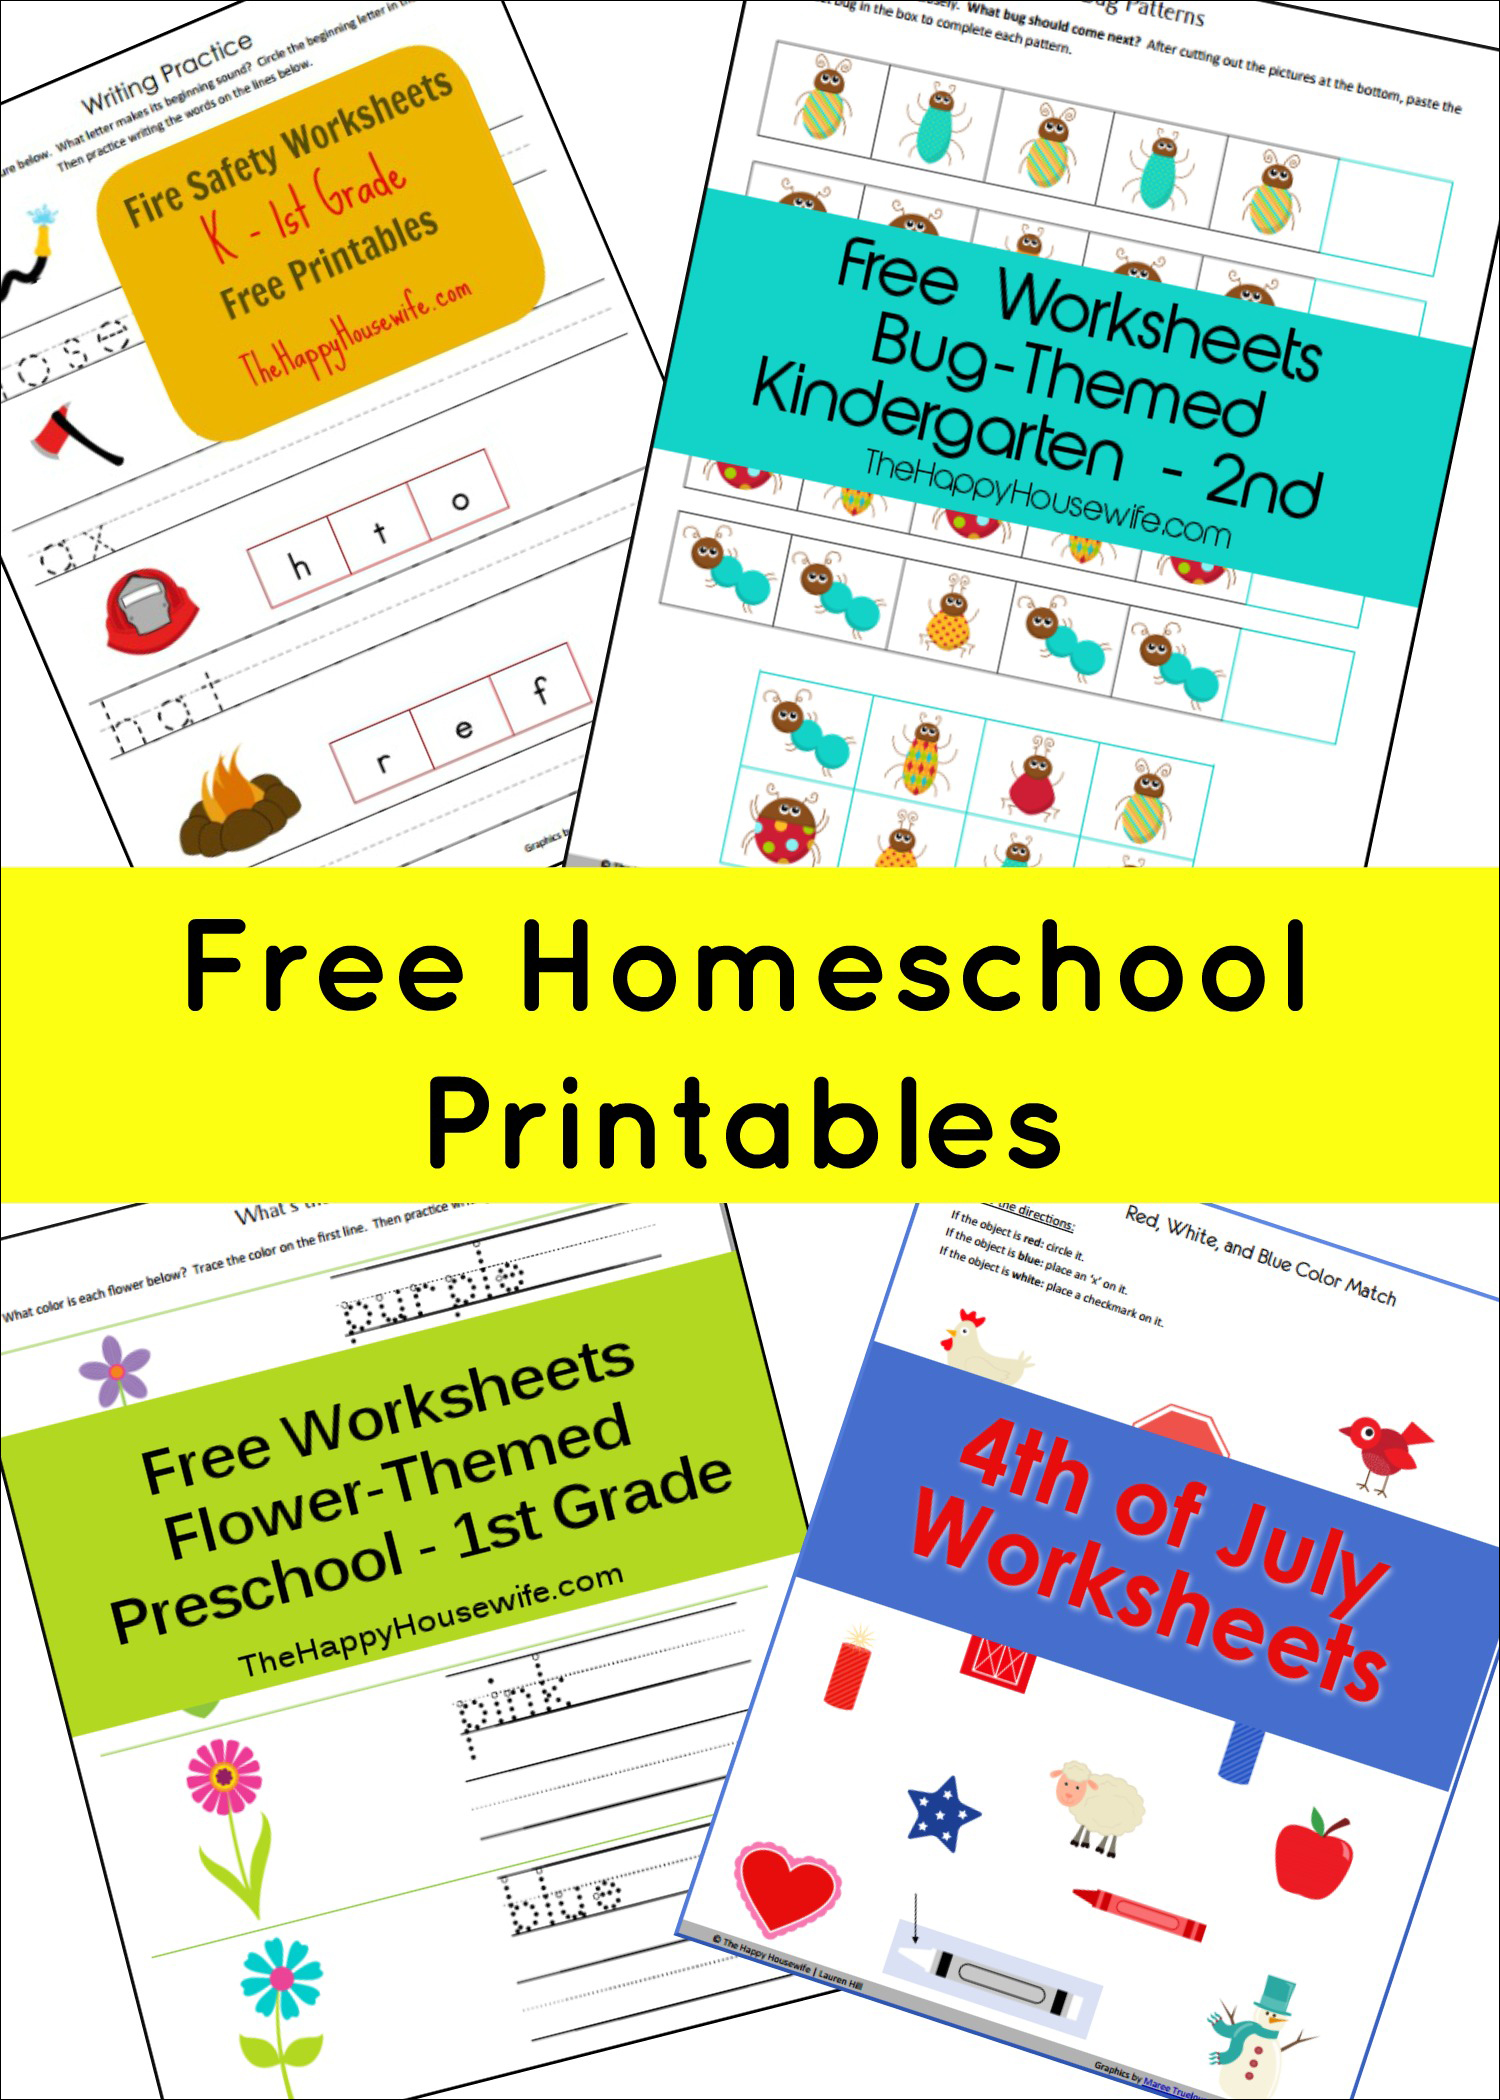 Free Homeschool Printables from The Happy Housewife